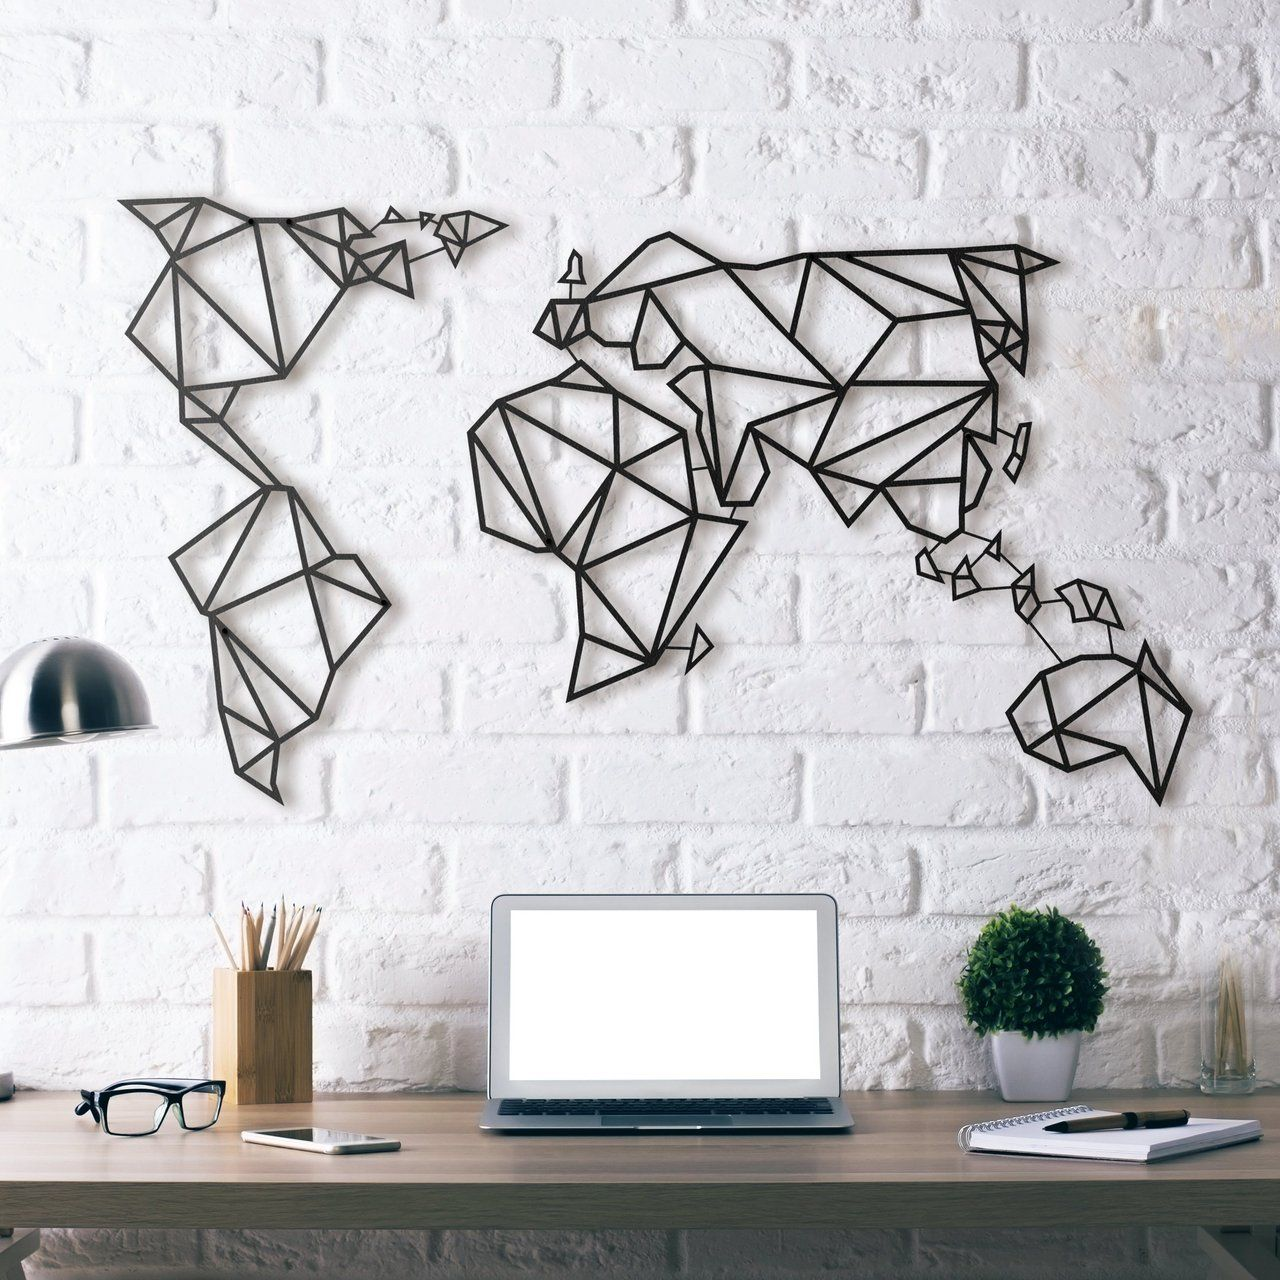 World Map Metal Wall Art | Products to Buy | Pinterest ...